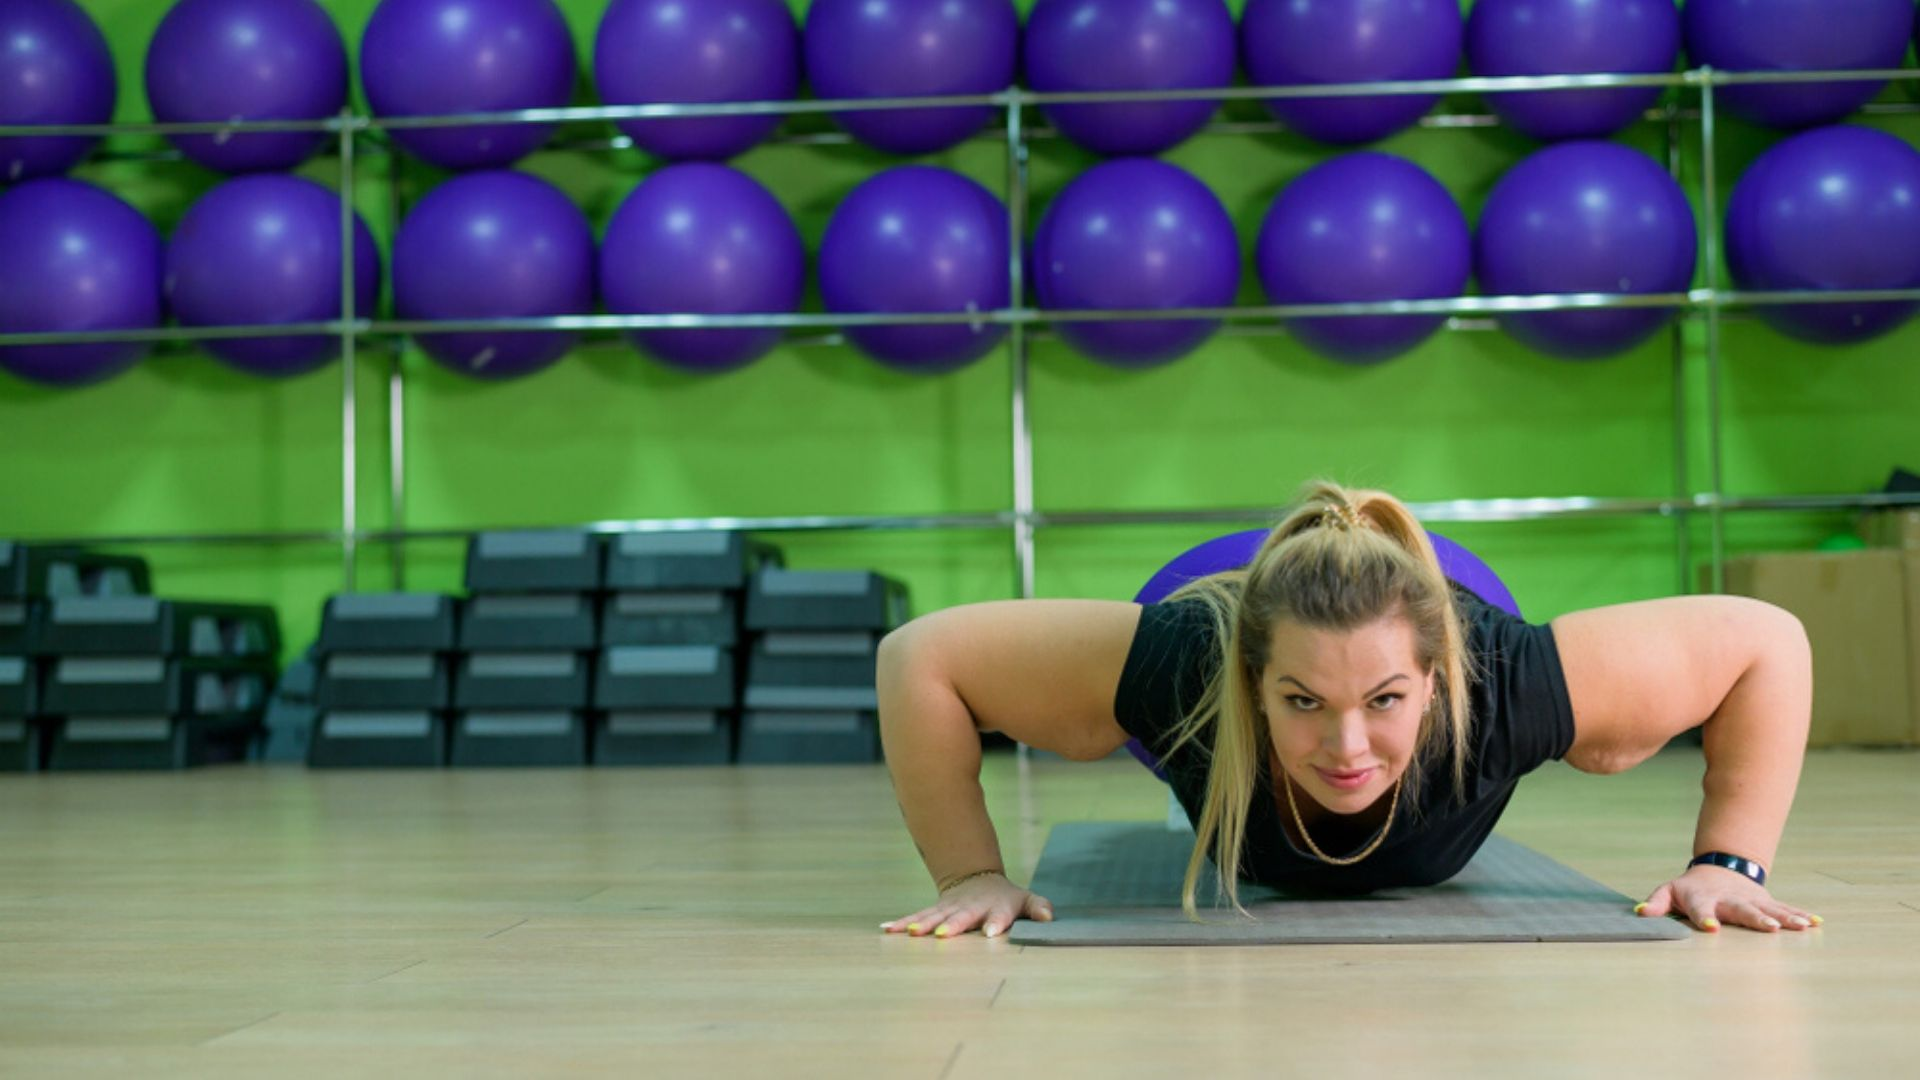 overweight woman does push ups in the gym